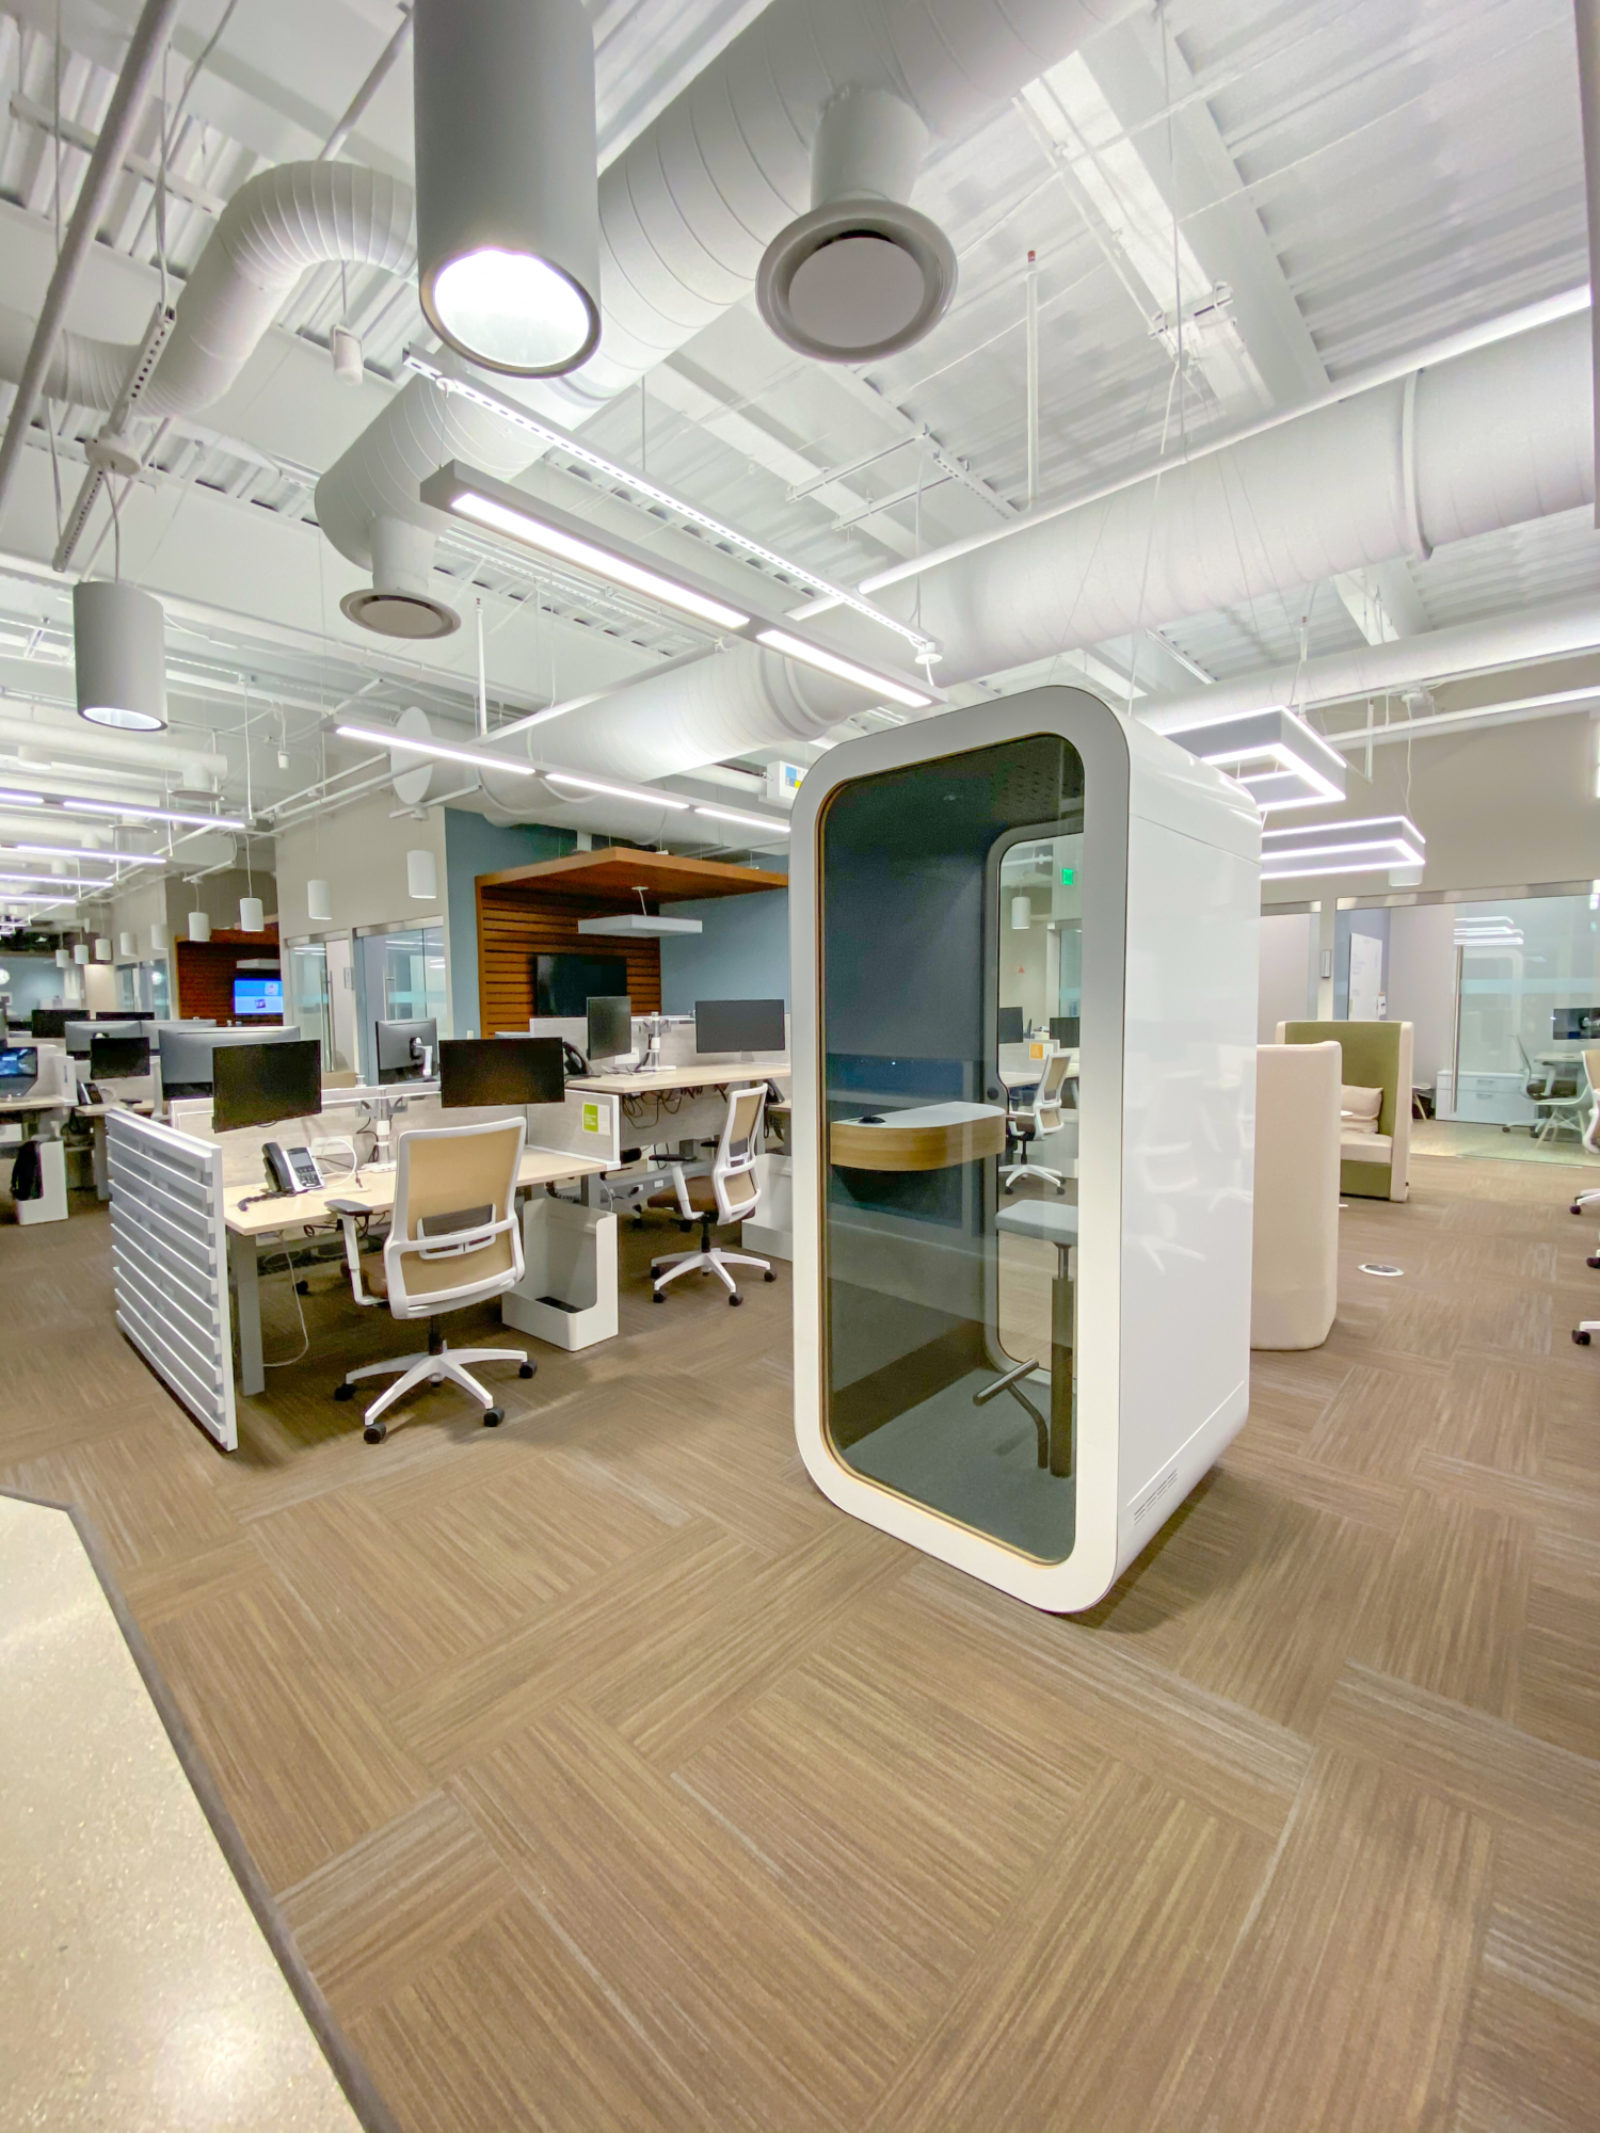 A white Framery O phonebooth in an open office plan with rows of workstations behind it.